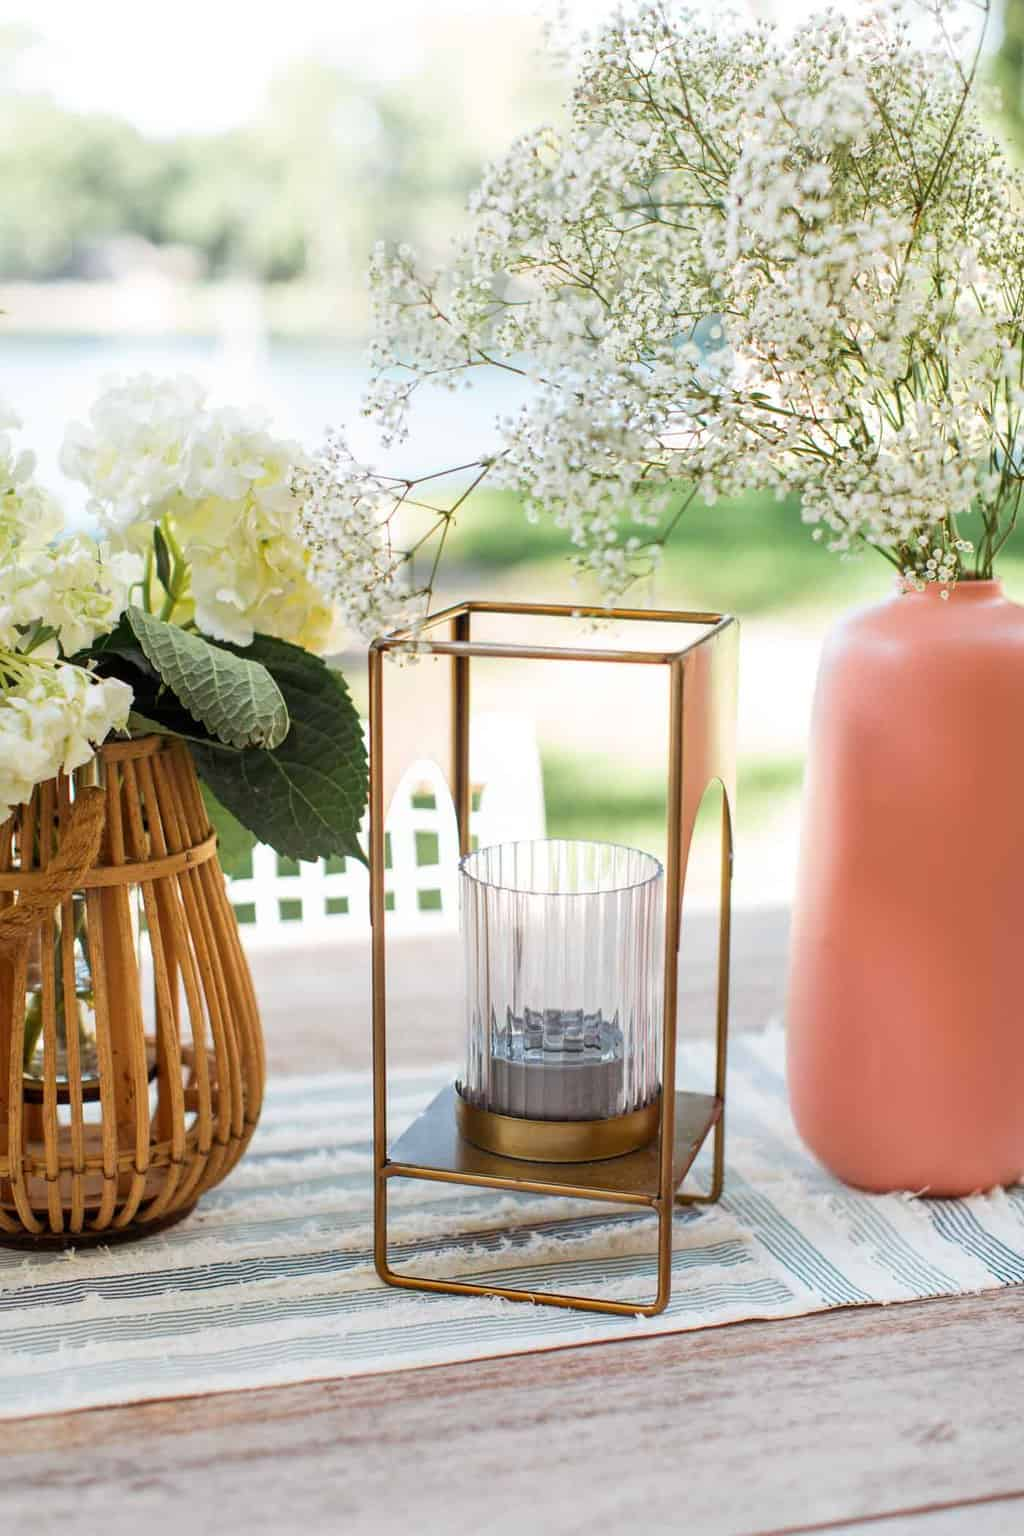 brass lantern on an outdoor table